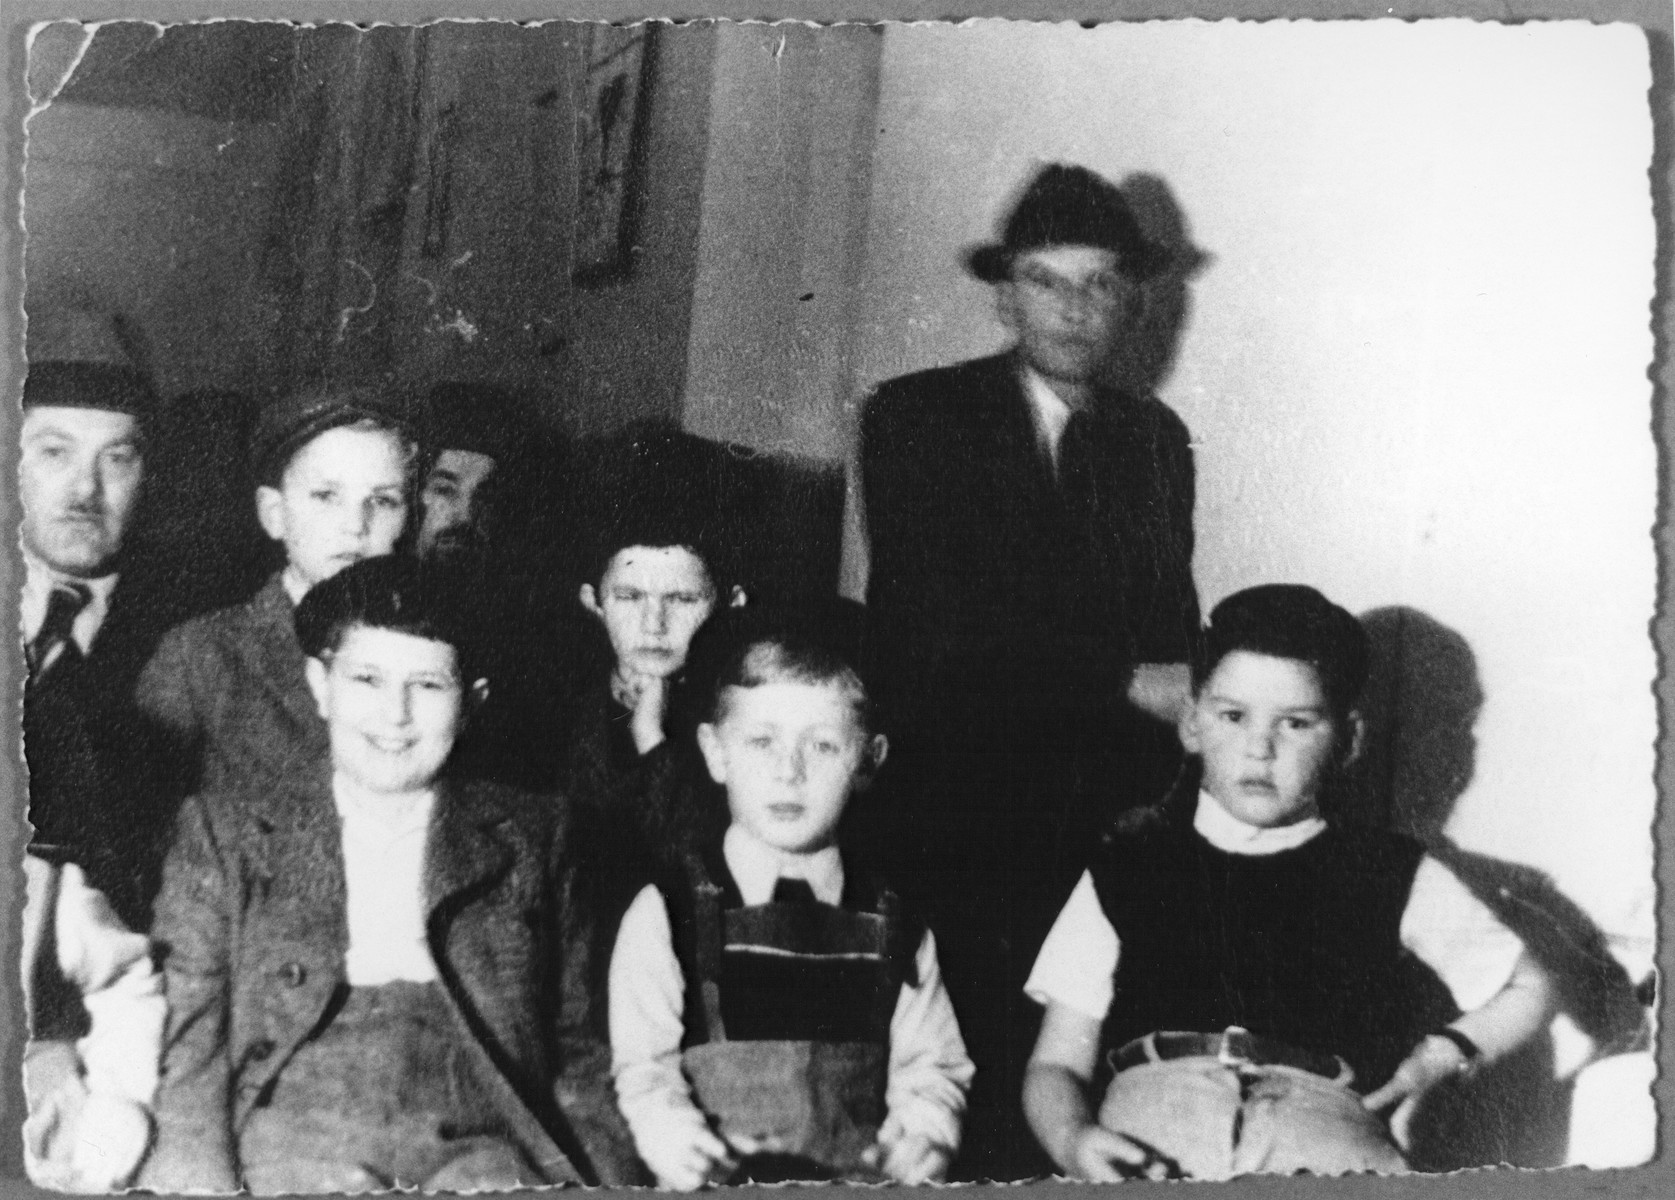 Group portrait of teachers and pupils at a cheder [Jewish religious primary school] in Zagreb.  Among those pictured is Pavel Deutsch (front row, center).